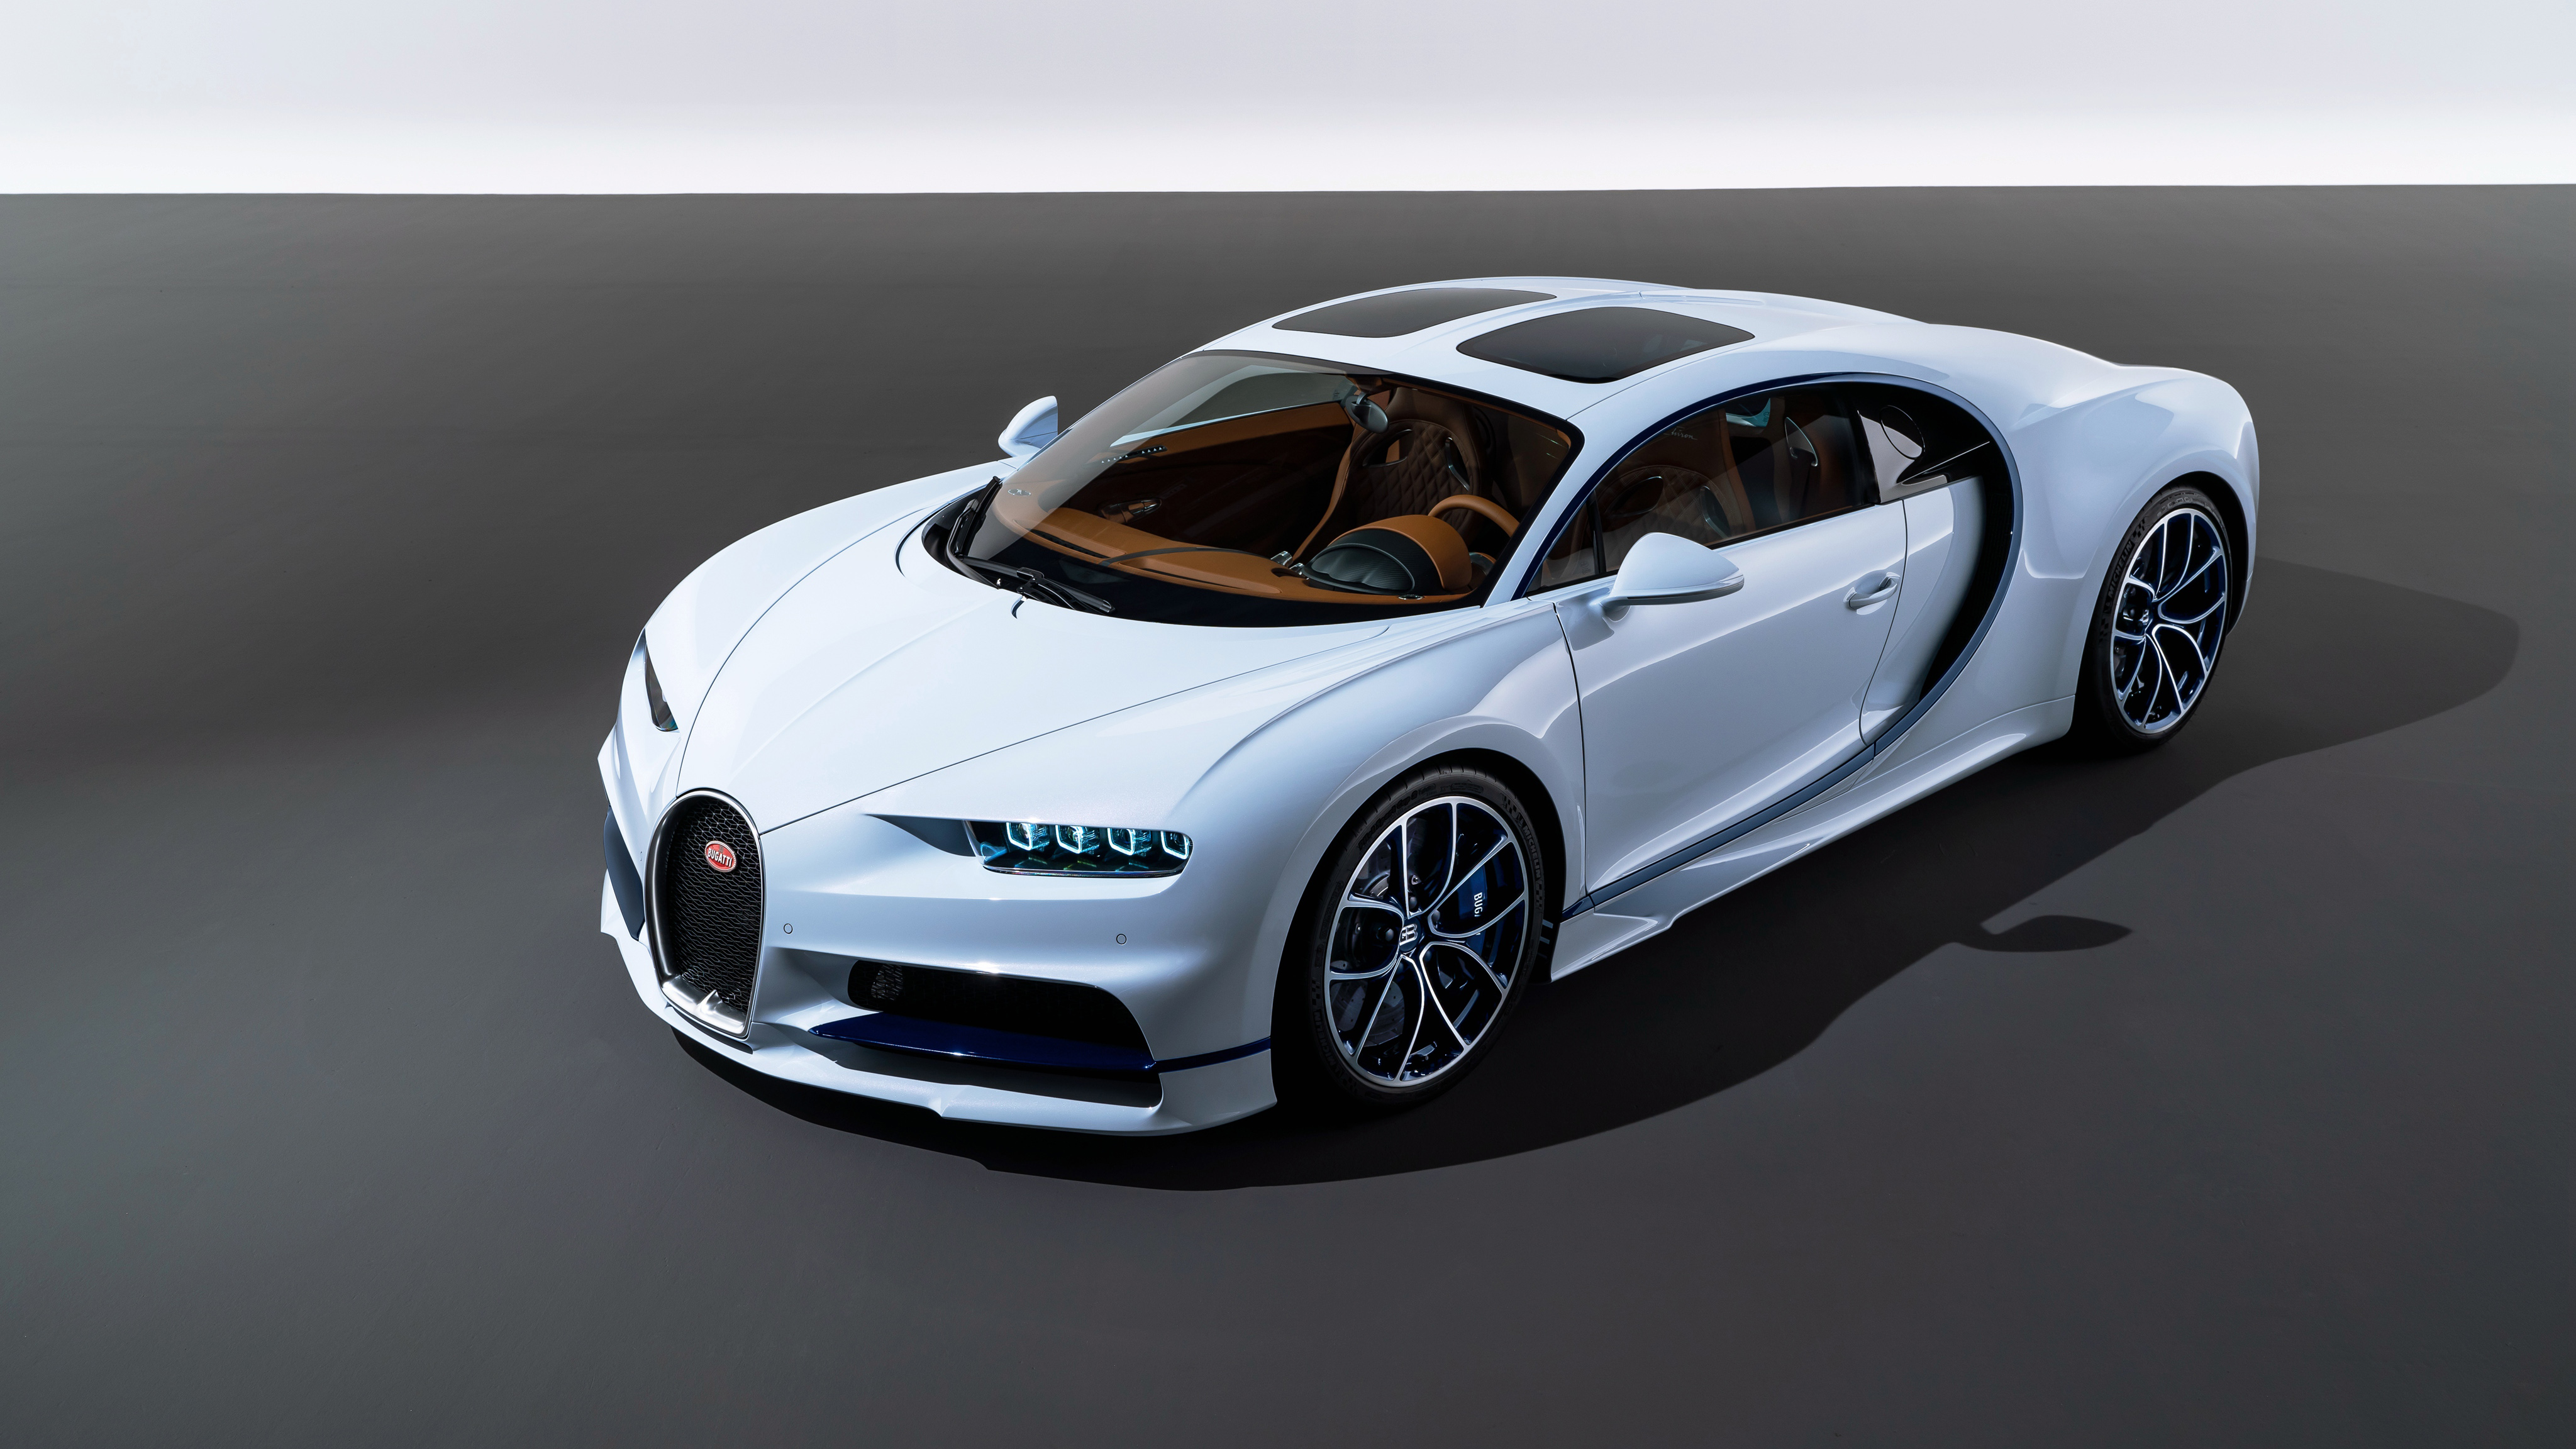 Bugatti chiron sky view show car 4k wallpaper hd car - Wallpaper hd 4k car ...